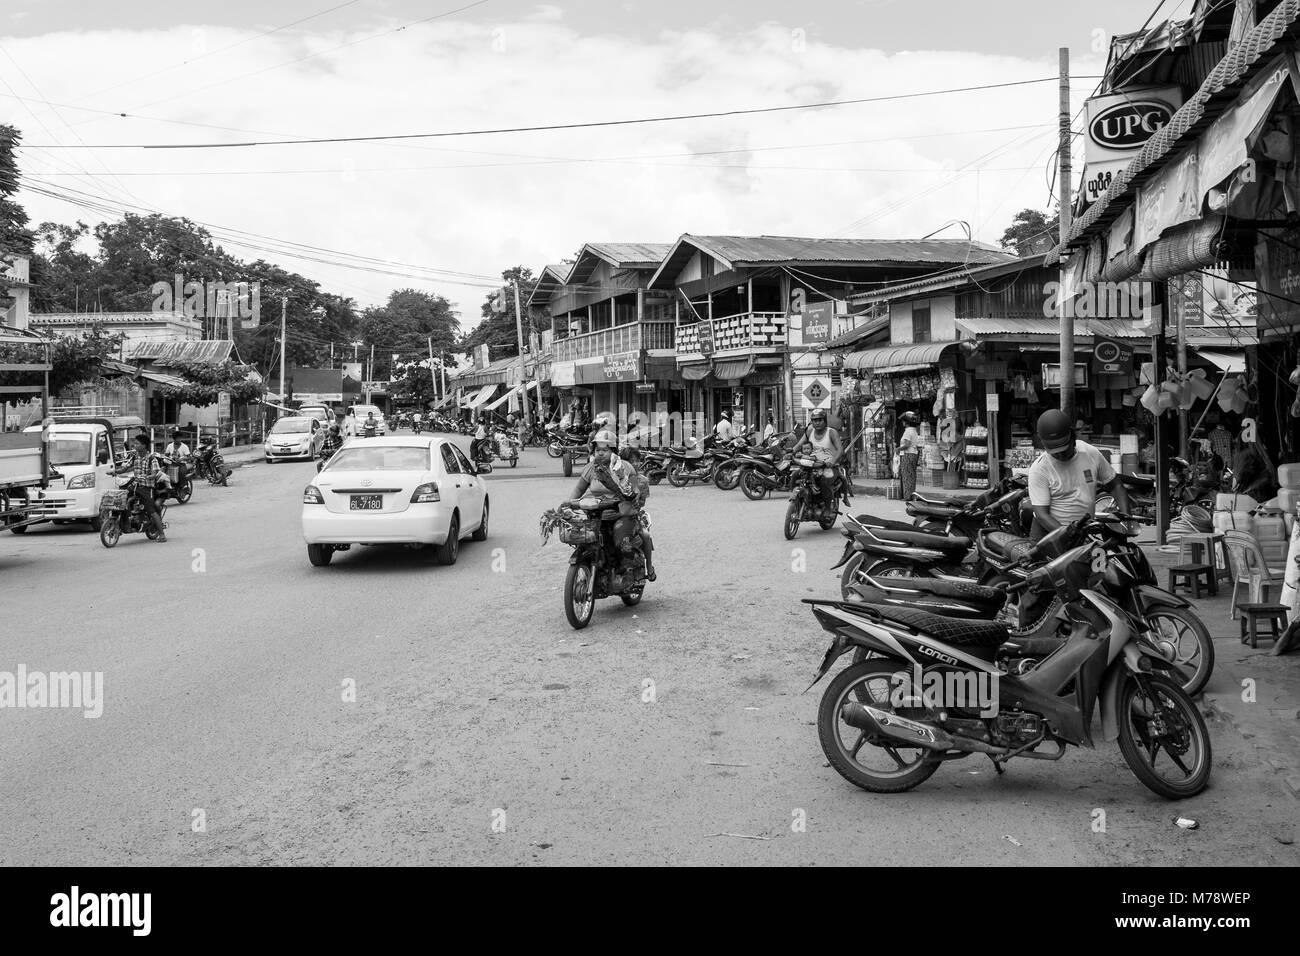 A sandy road next to Nyaung U market near Bagan, Myanmar, Burma. market stalls and parked motorcycles, common mode - Stock Image